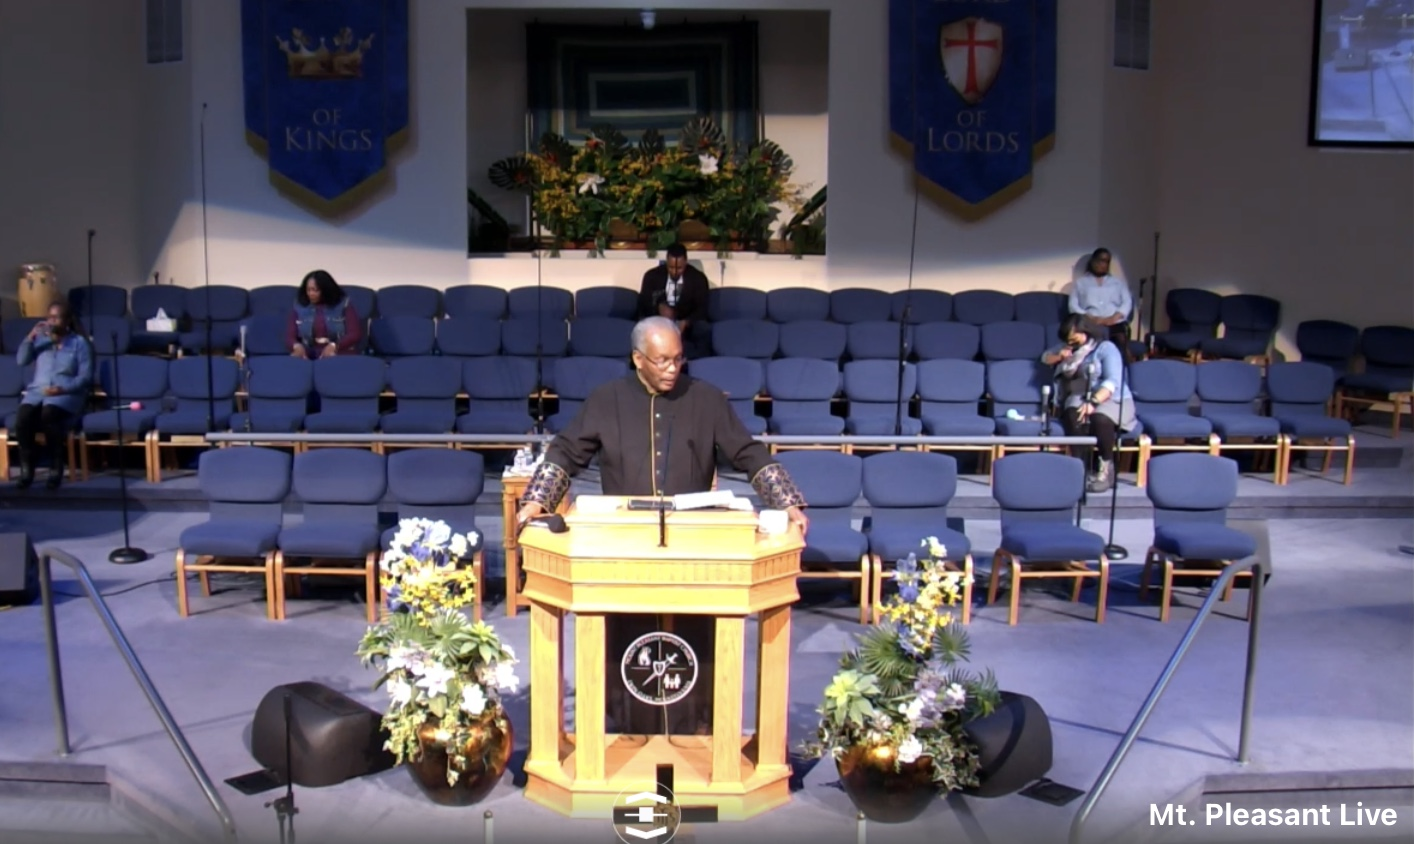 The Assurance Of The Love Of God Rev. Dr. Willie E. Robinson